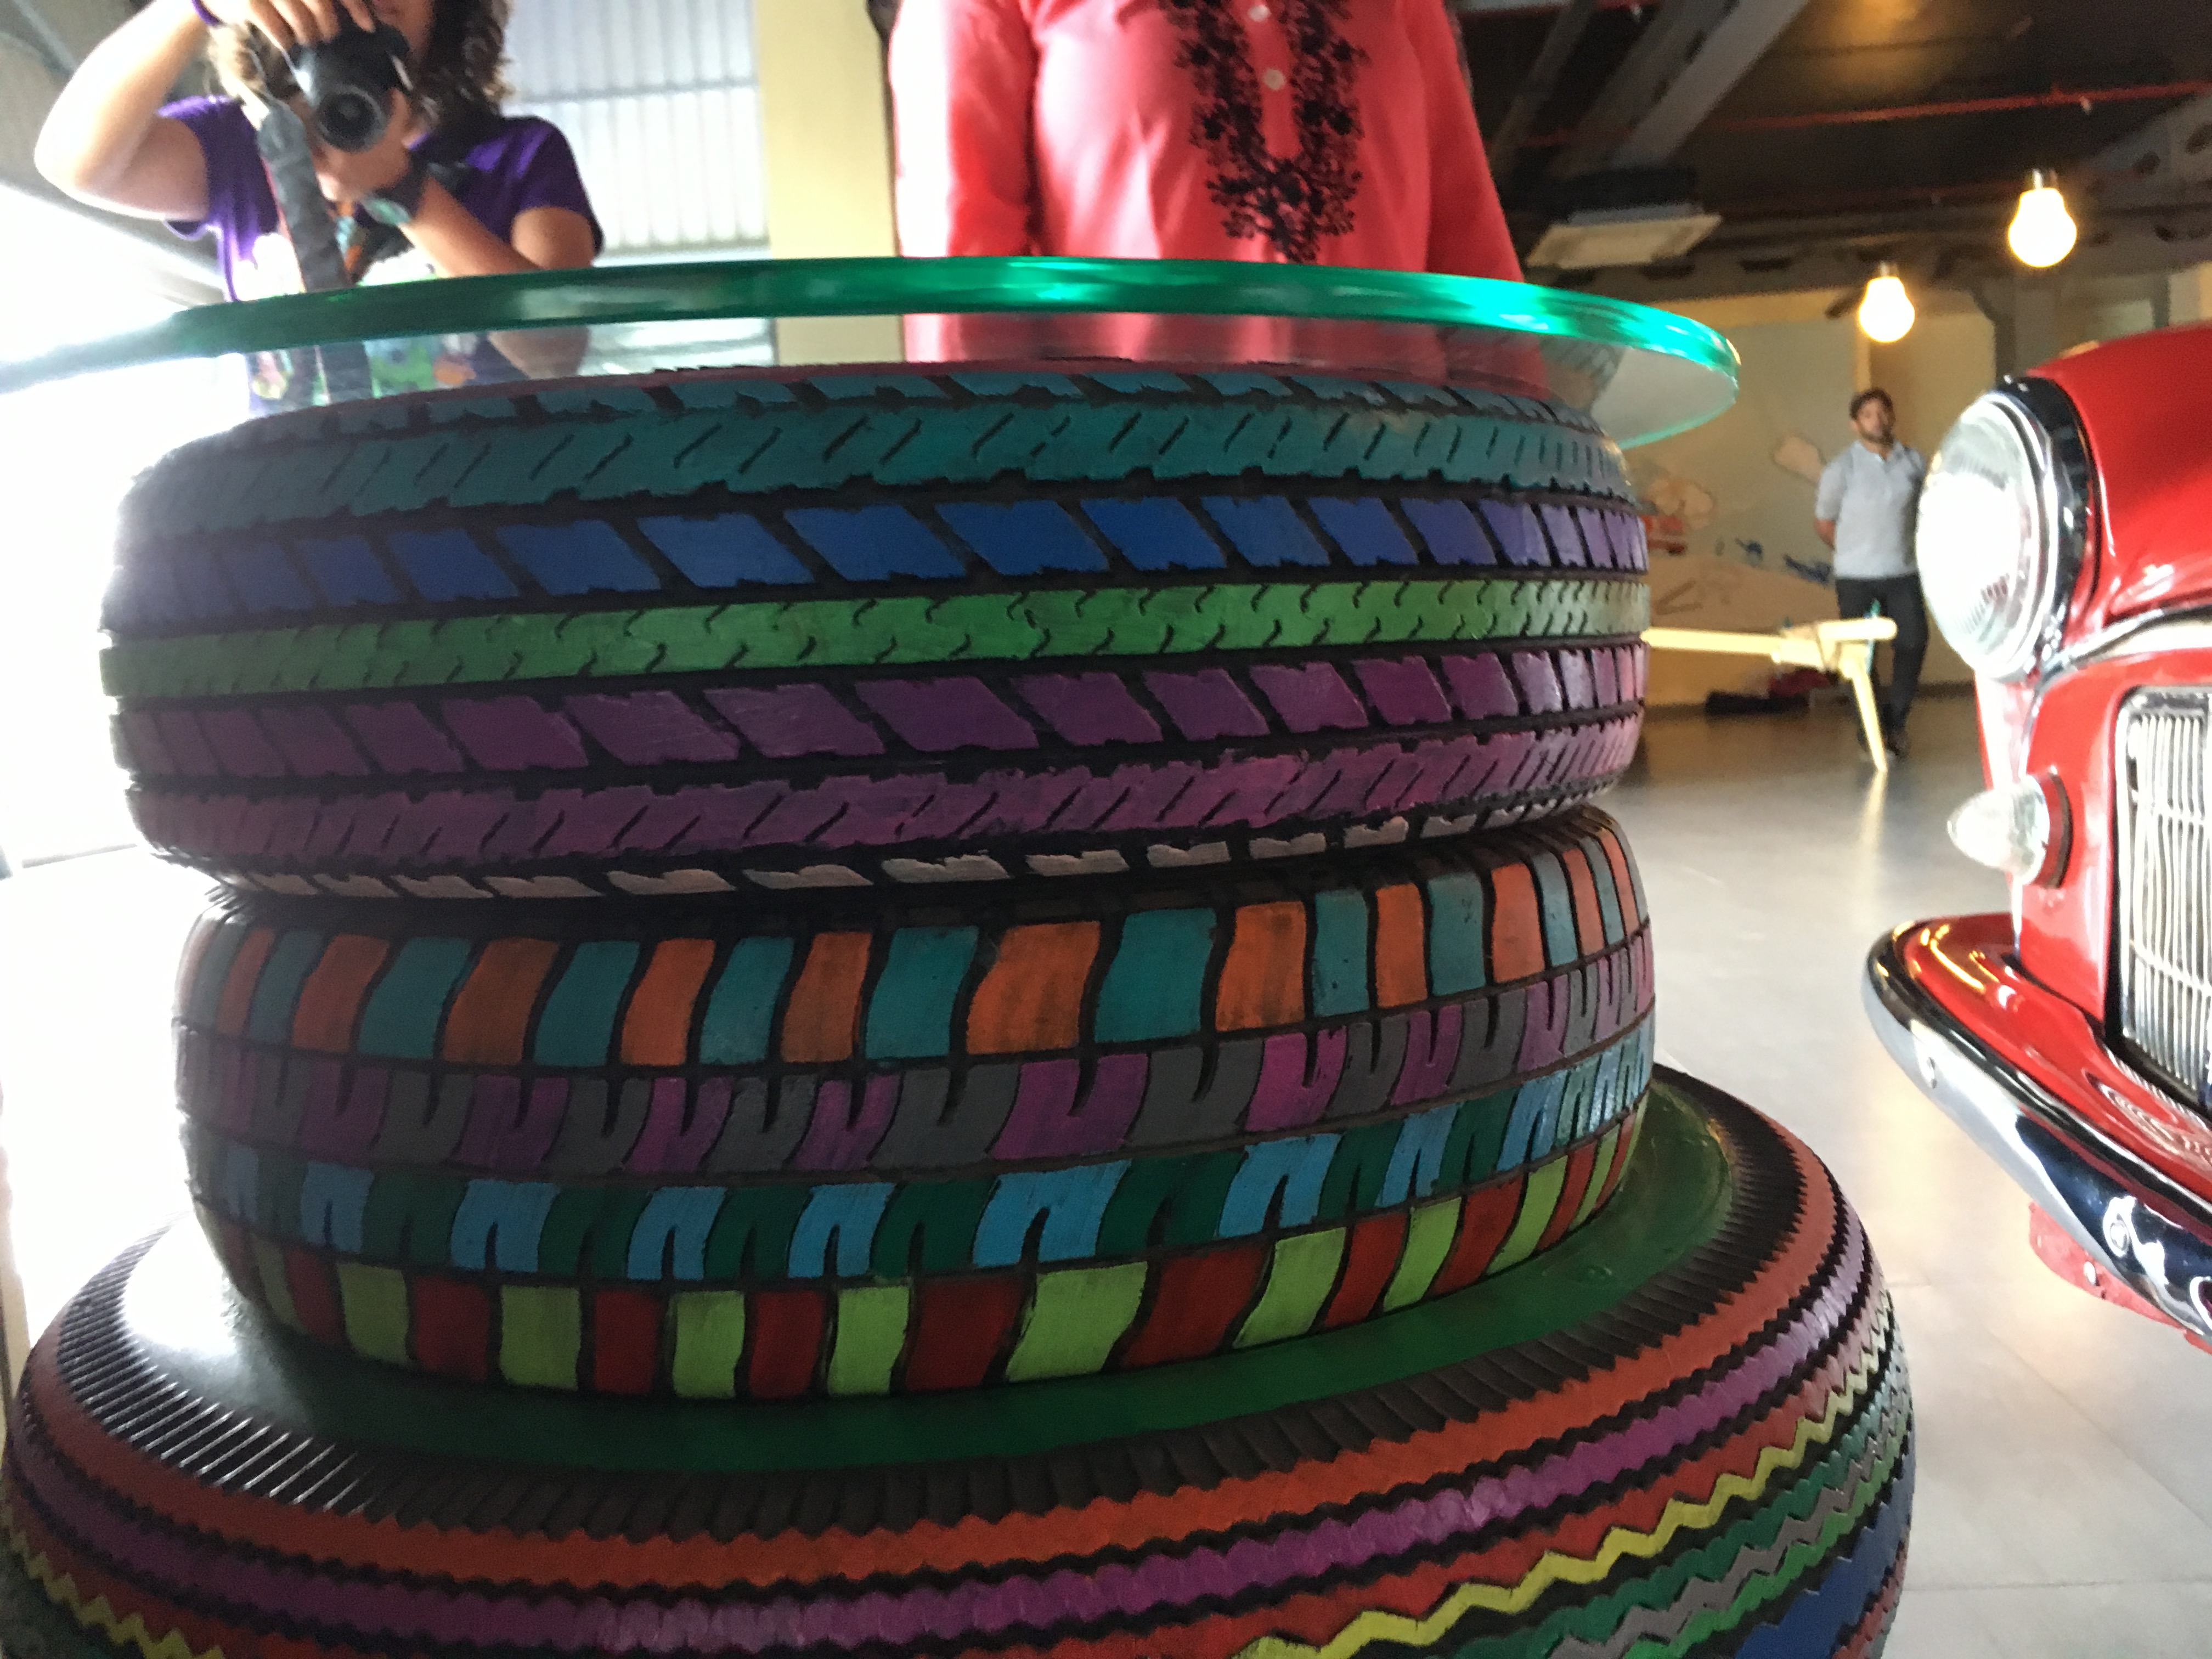 A stack of rainbow coloured tyres